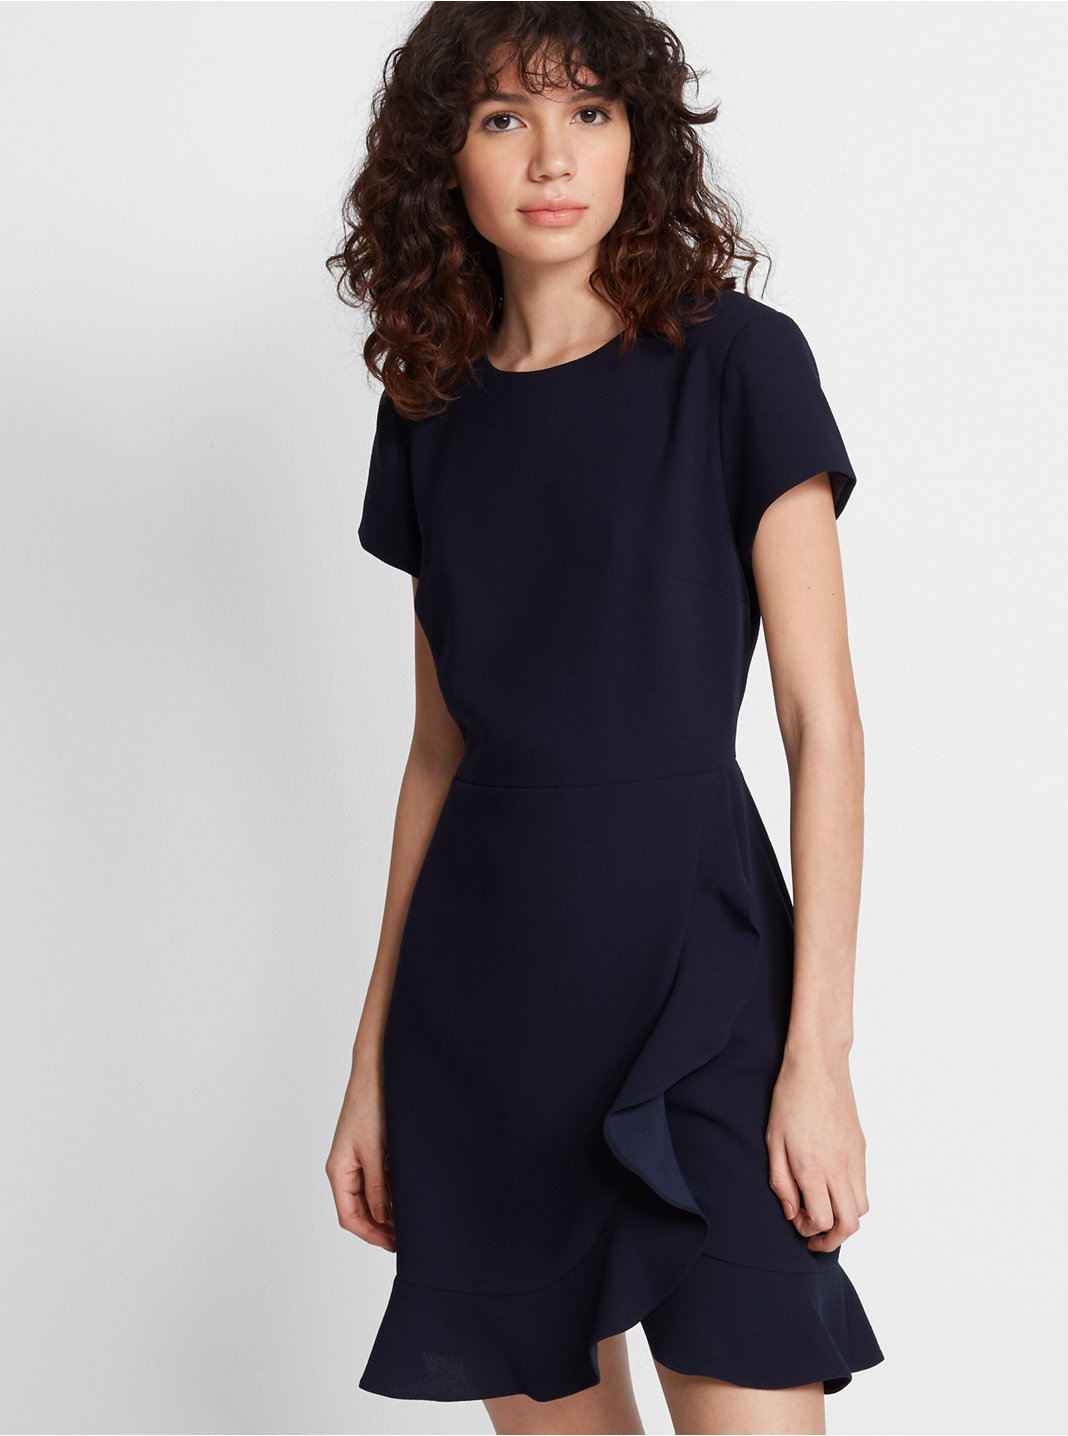 Larna Dress